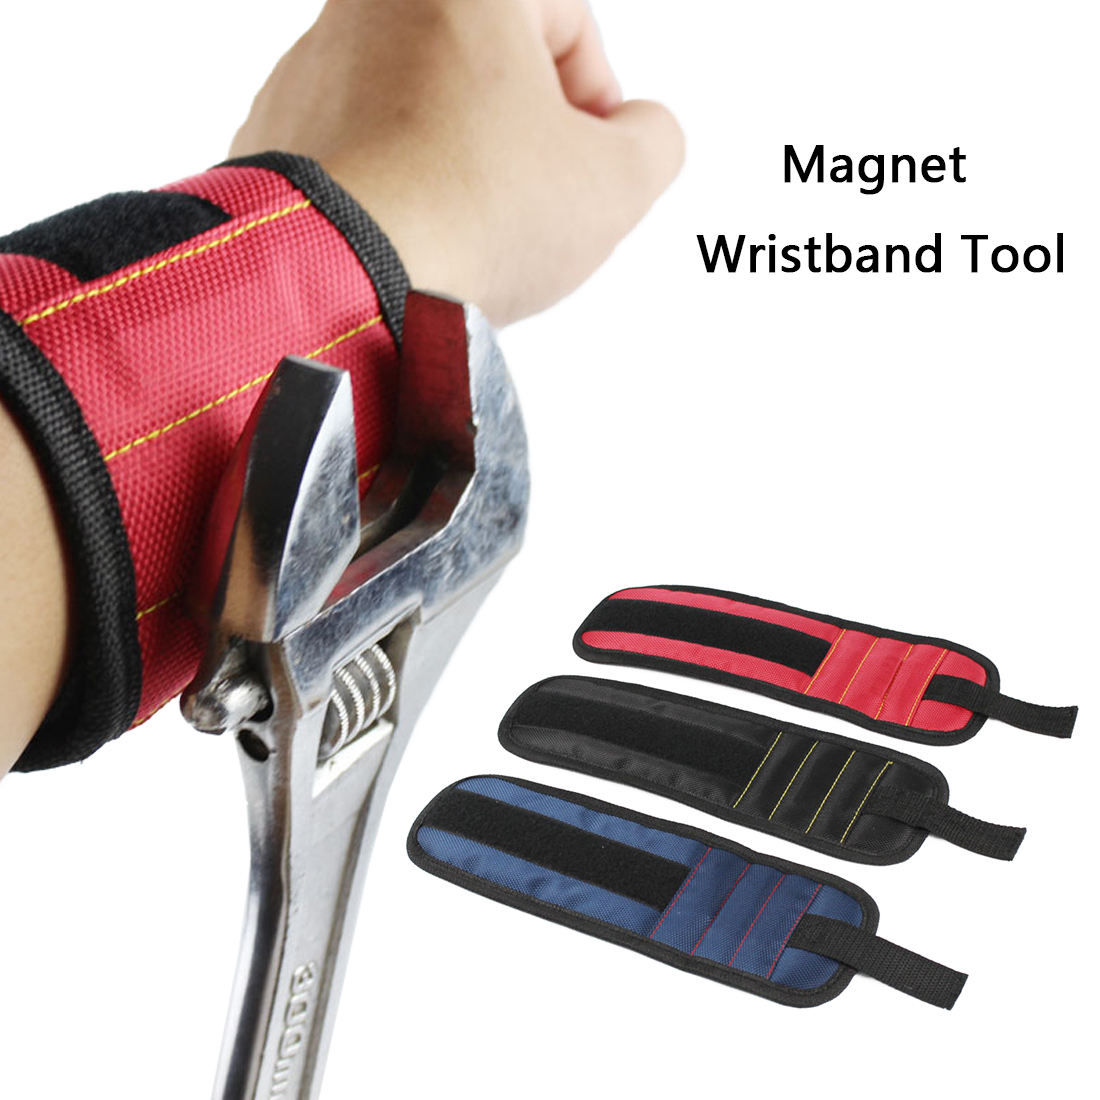 Magnetic Wristband Strong Magnets Oxford Cloth Pocket Wrist Tool Pouch Bag Screws Drill Electrician Tools Bag For Holding Screws